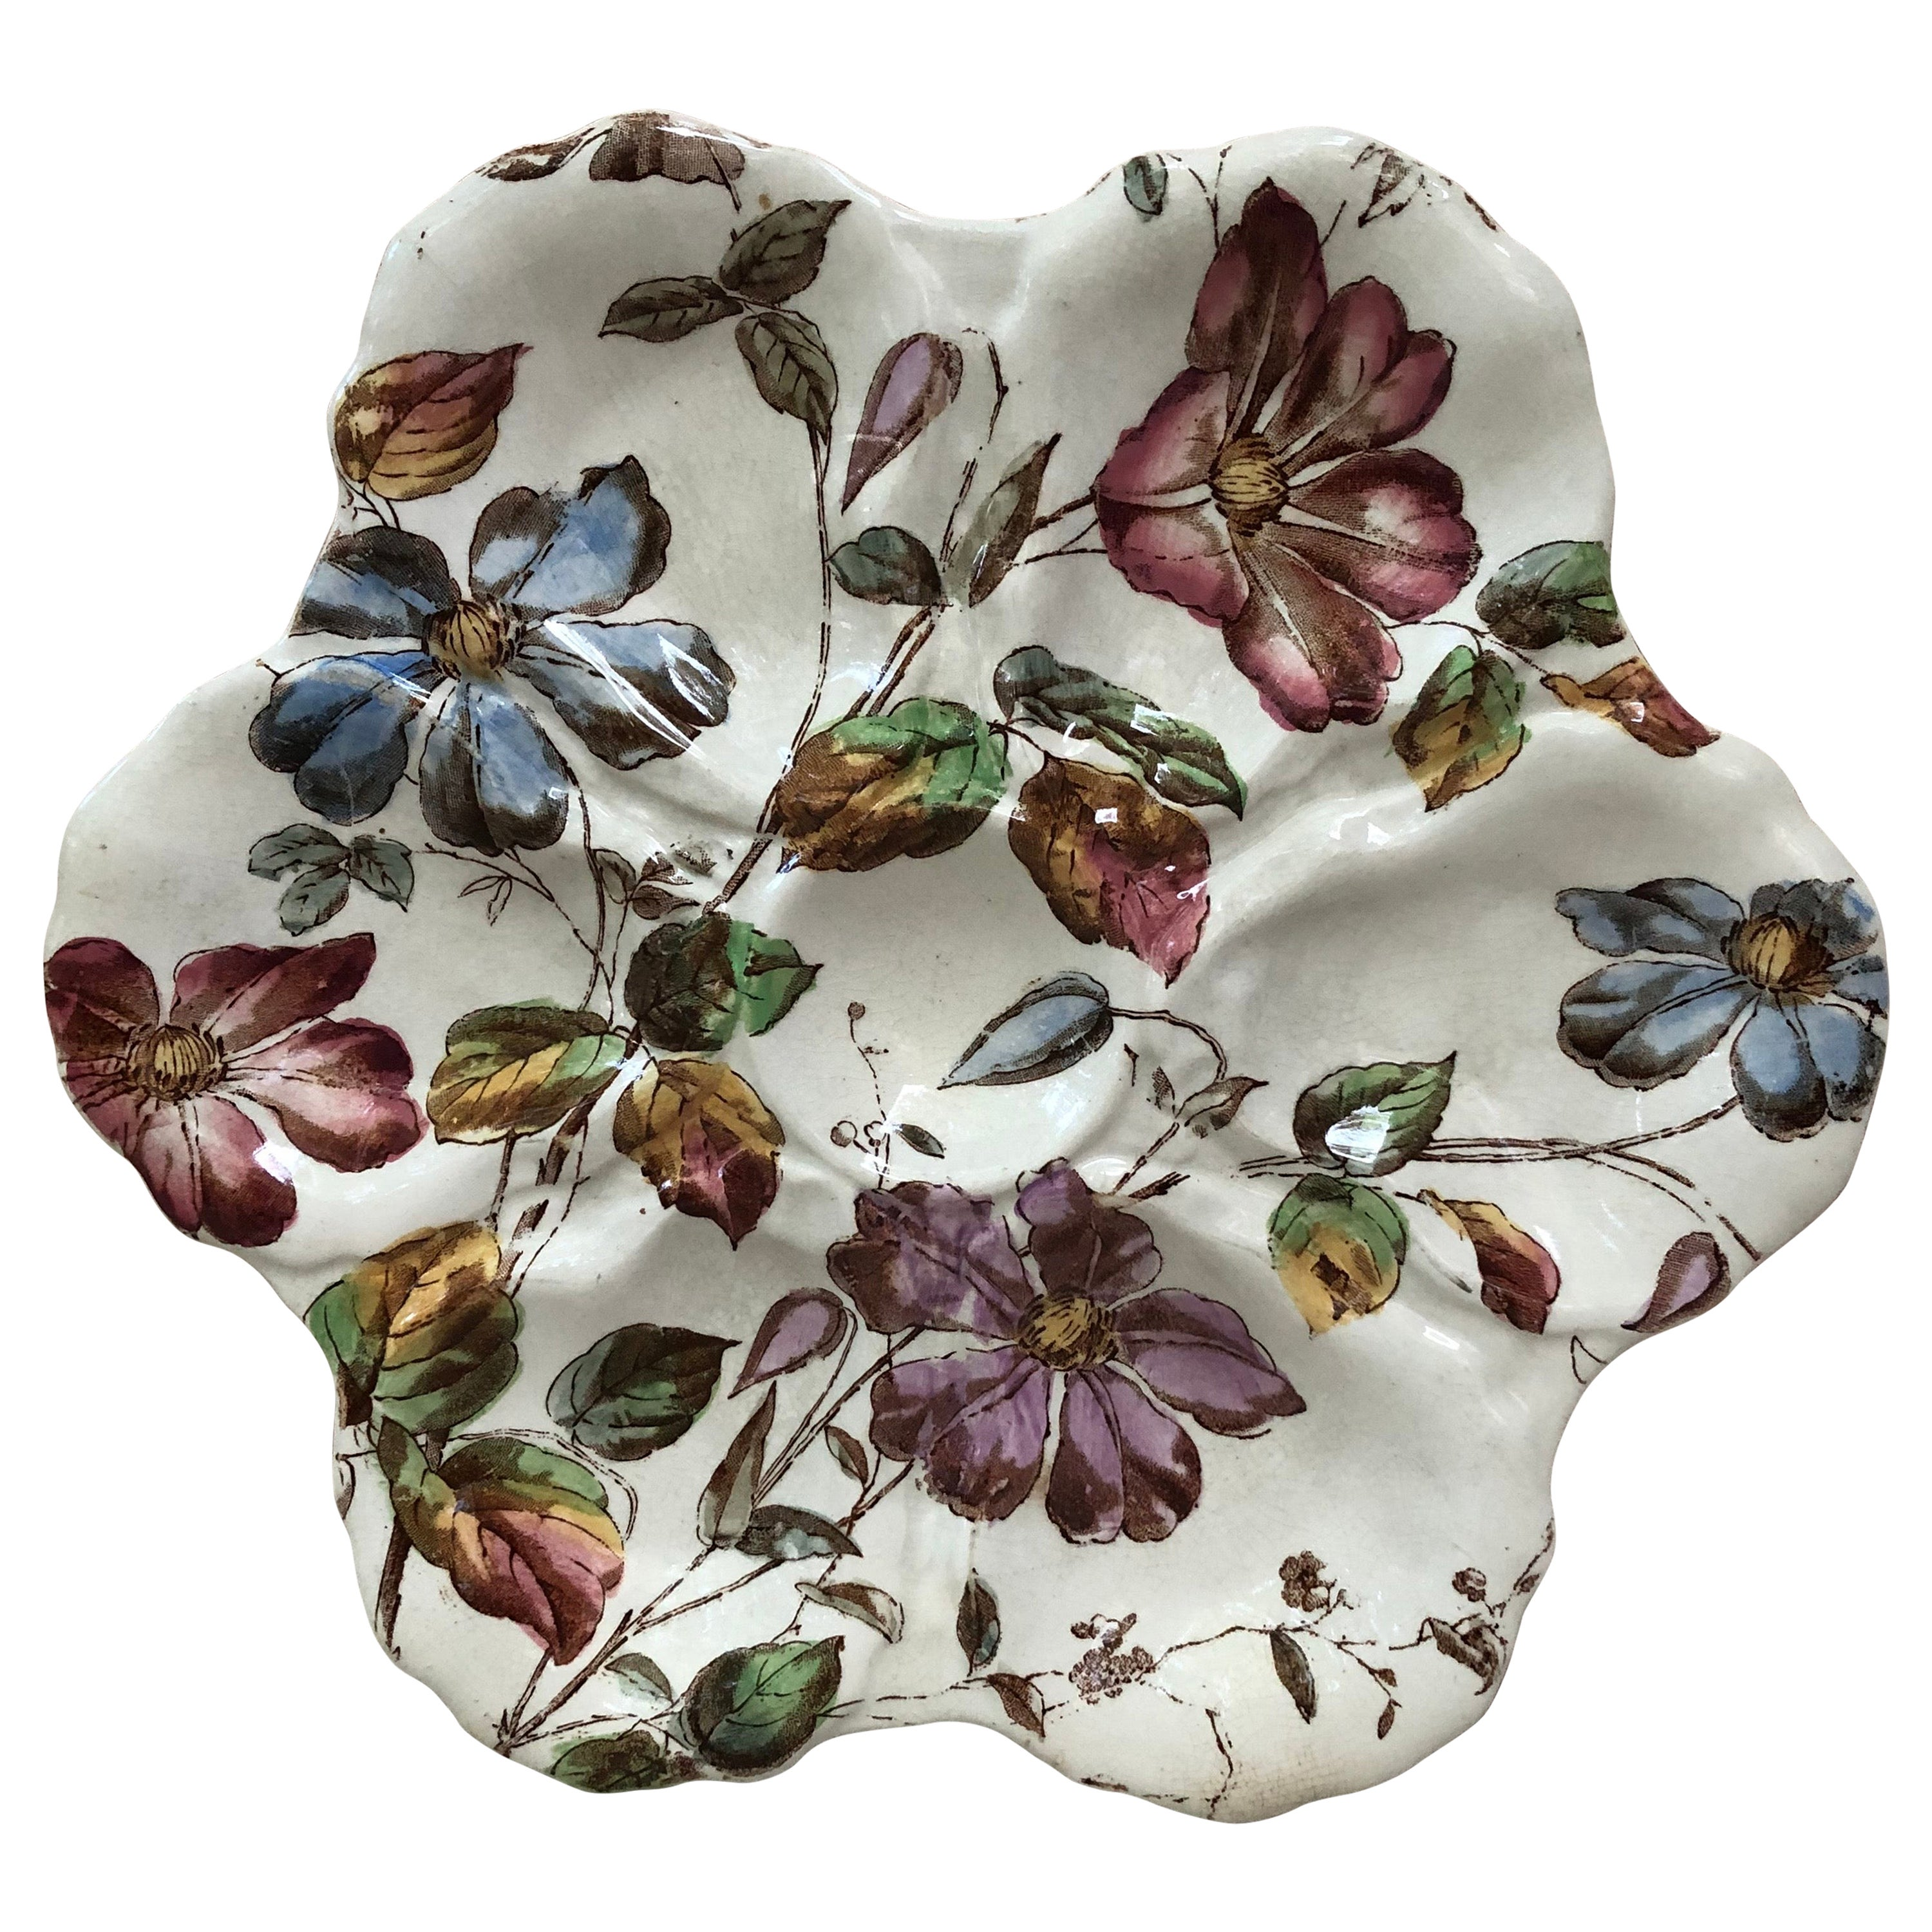 19th Century English Oyster Plate with Flowers Adderley